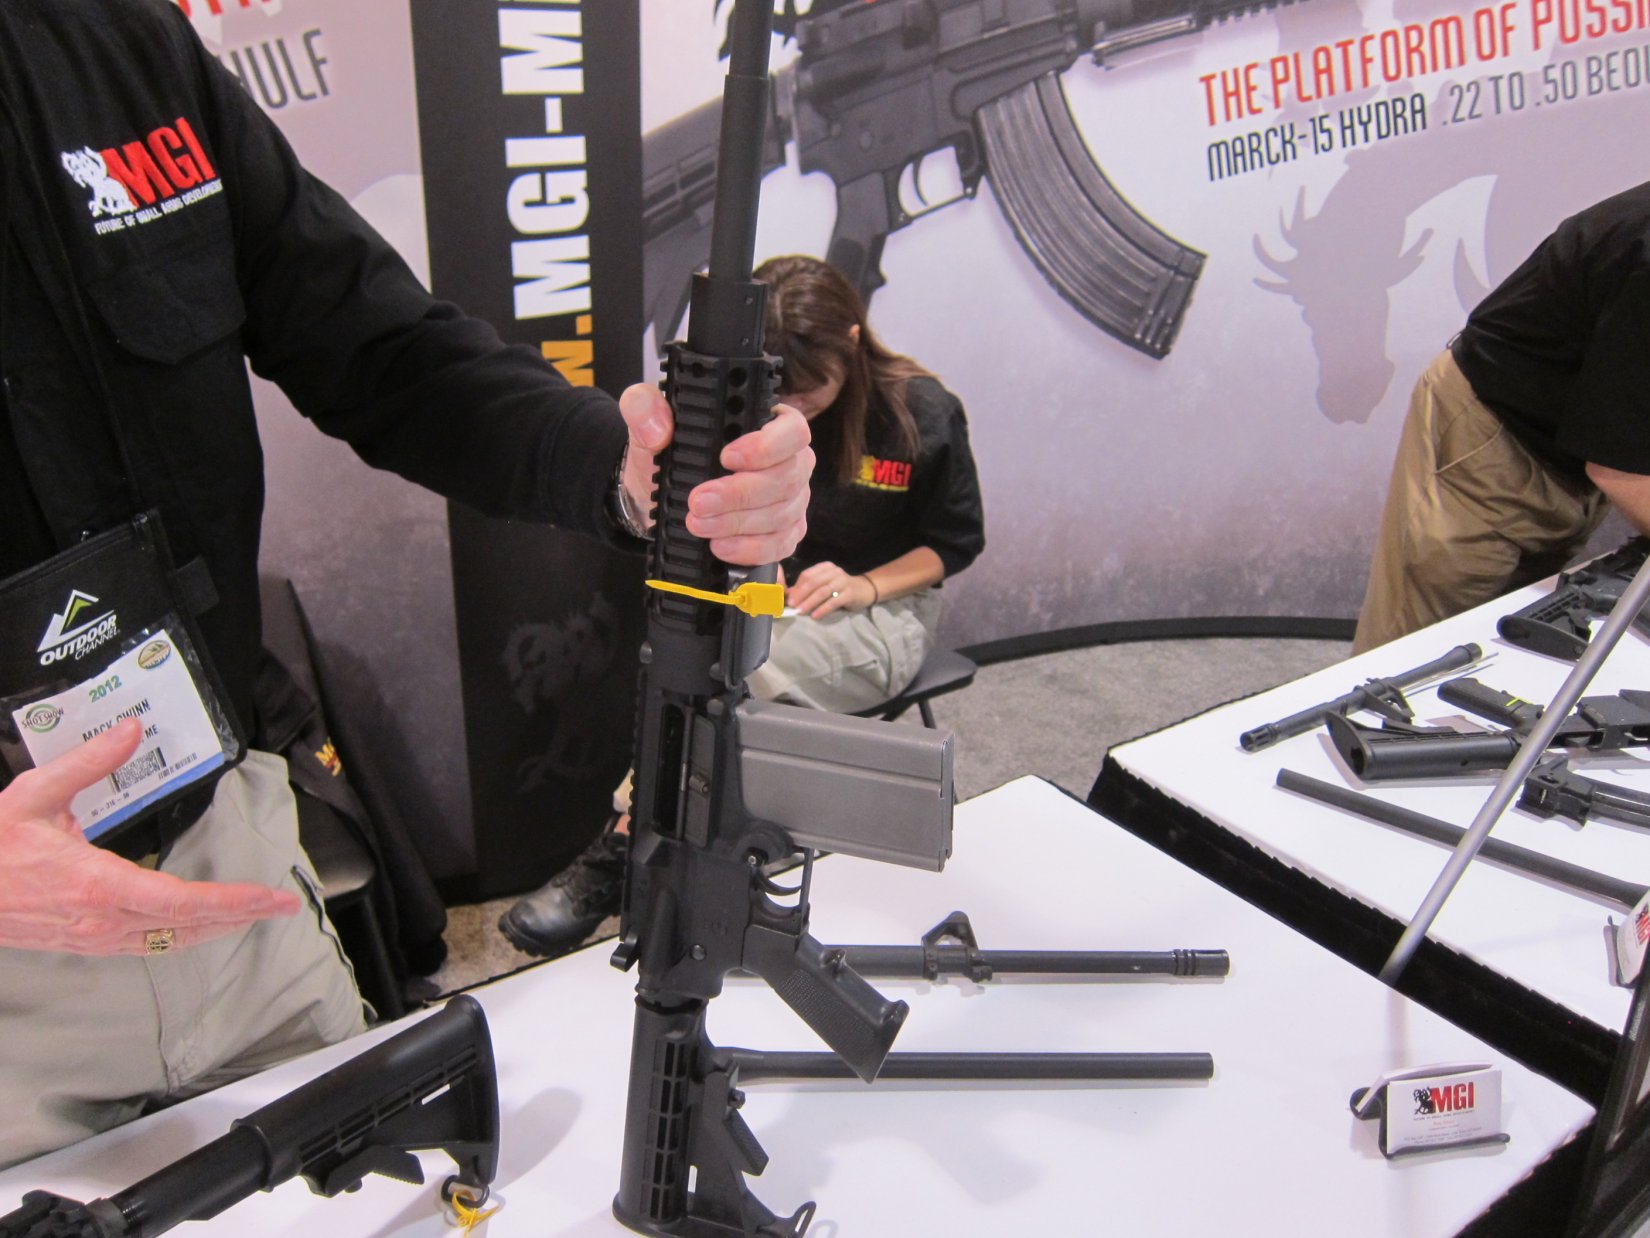 MGI Hydra AR 7.62mm Magazine SHOT Show 2012 DefenseReview.com DR 1 MGI Hydra Modular 7.62mm NATO/.308 Win. Tactical AR (AR 15) Rifle/Carbine/SBR (Short Barreled Rifle) Conversion Kit Prototype with Modular Lower Receiver, 7.62mm Magwell and Modified M14 Mag (Photos and Video!)